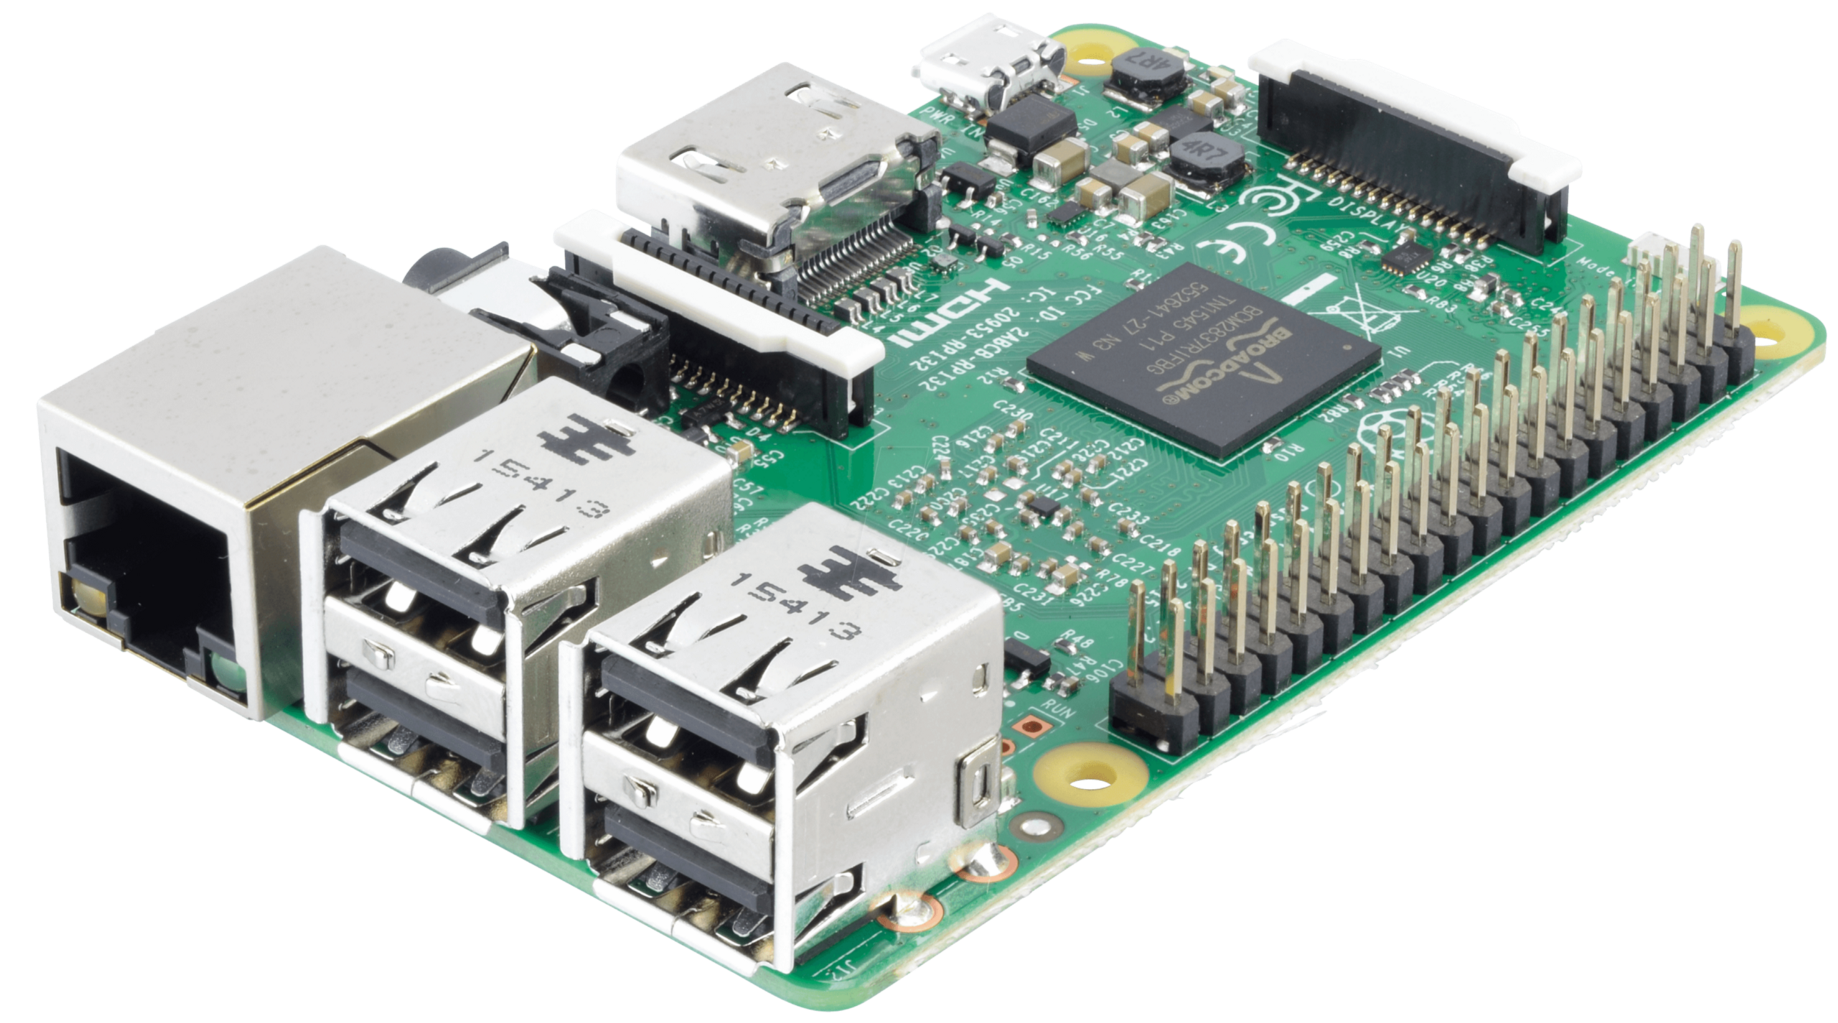 How to setup your Raspberry Pi and connect to it through SSH and